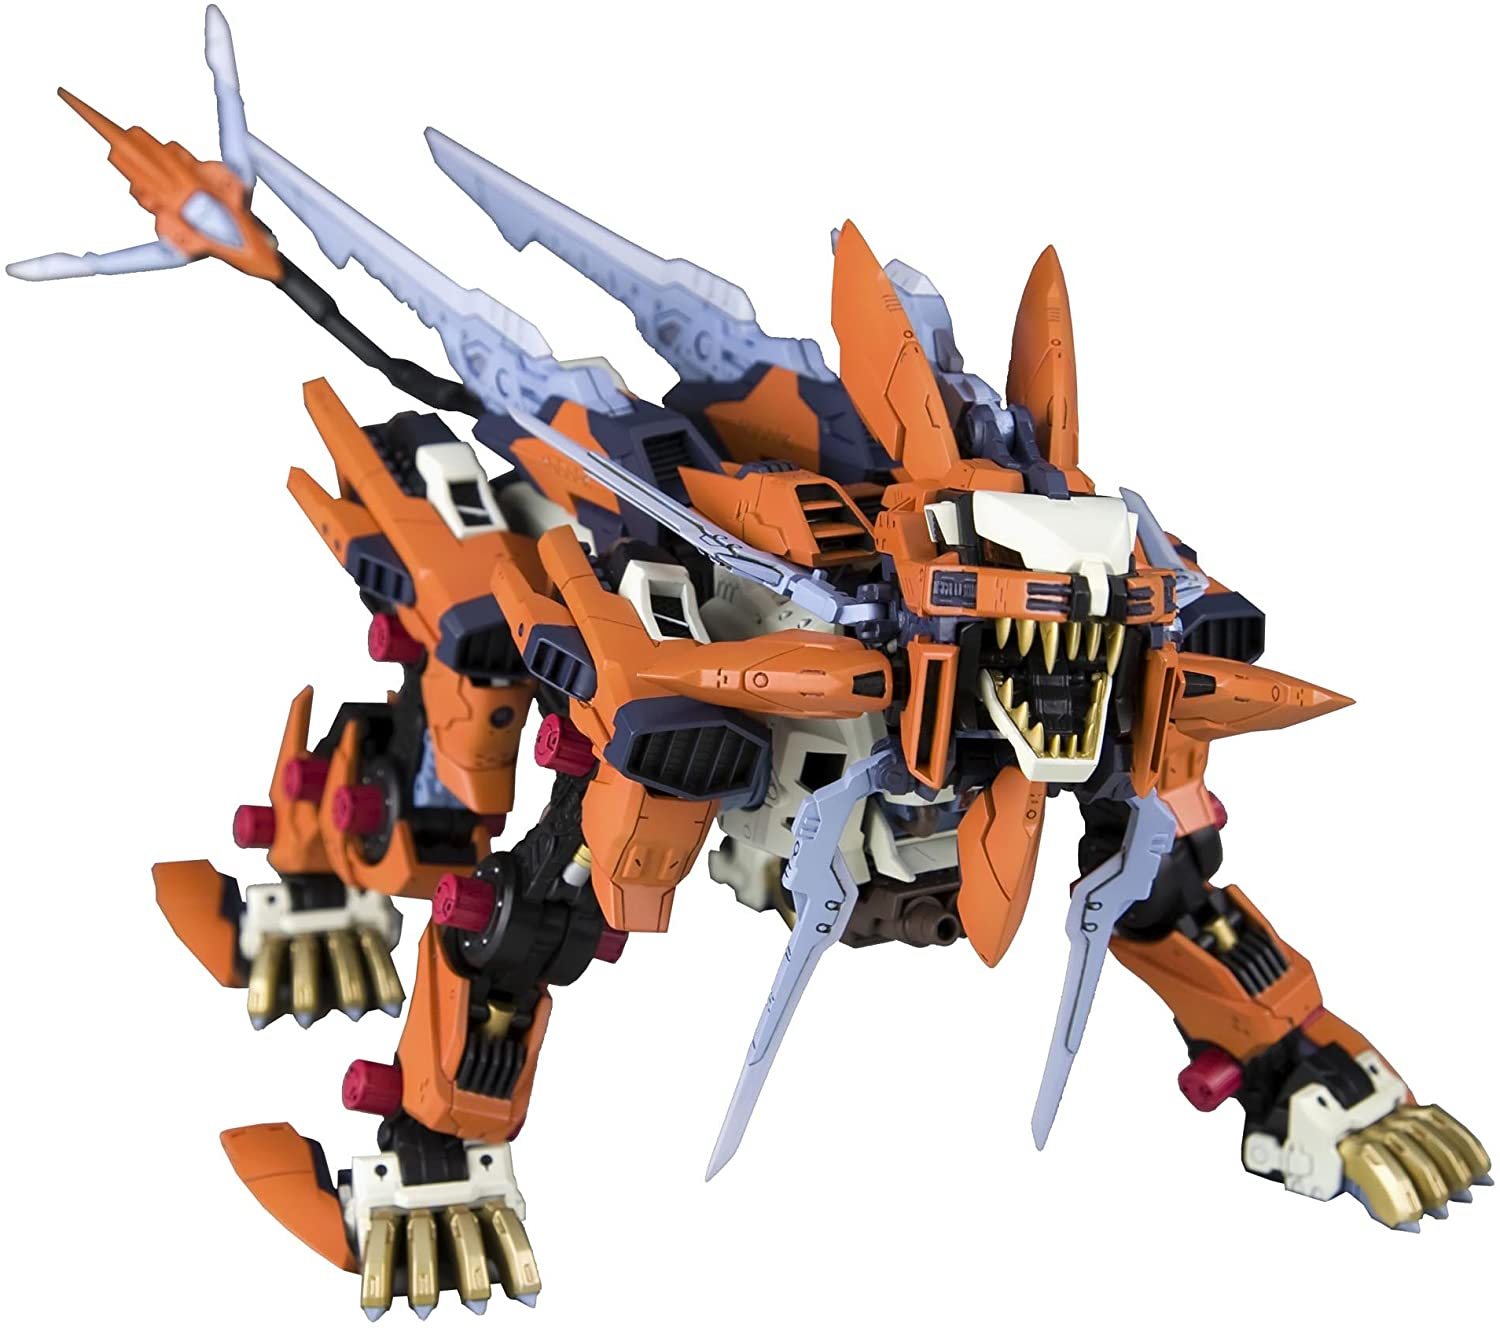 1/72 Scale ZOIDS - Liger Zero Schneider - RZ-041 HMM 026 (Highend Master Model) Construction kit 71zkybnuecLSL1500_